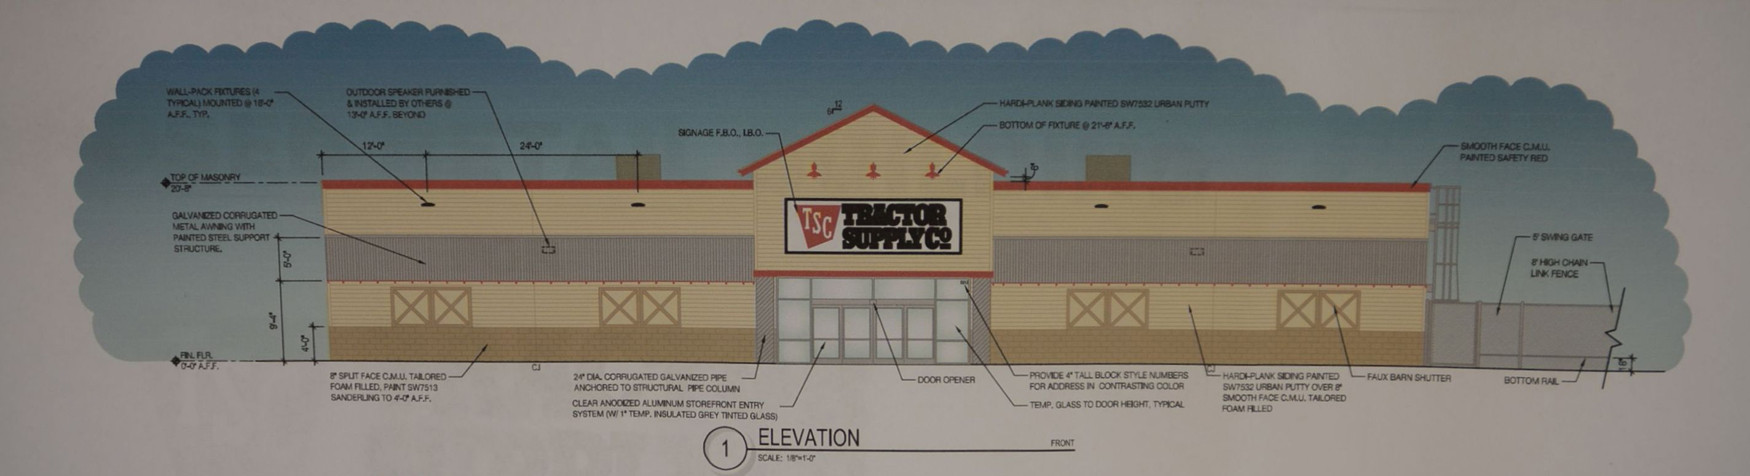 planning & zoning commission member jim swift urged that aesthetic changes  be made to the proposed tractor supply company building to have it satisfy  the